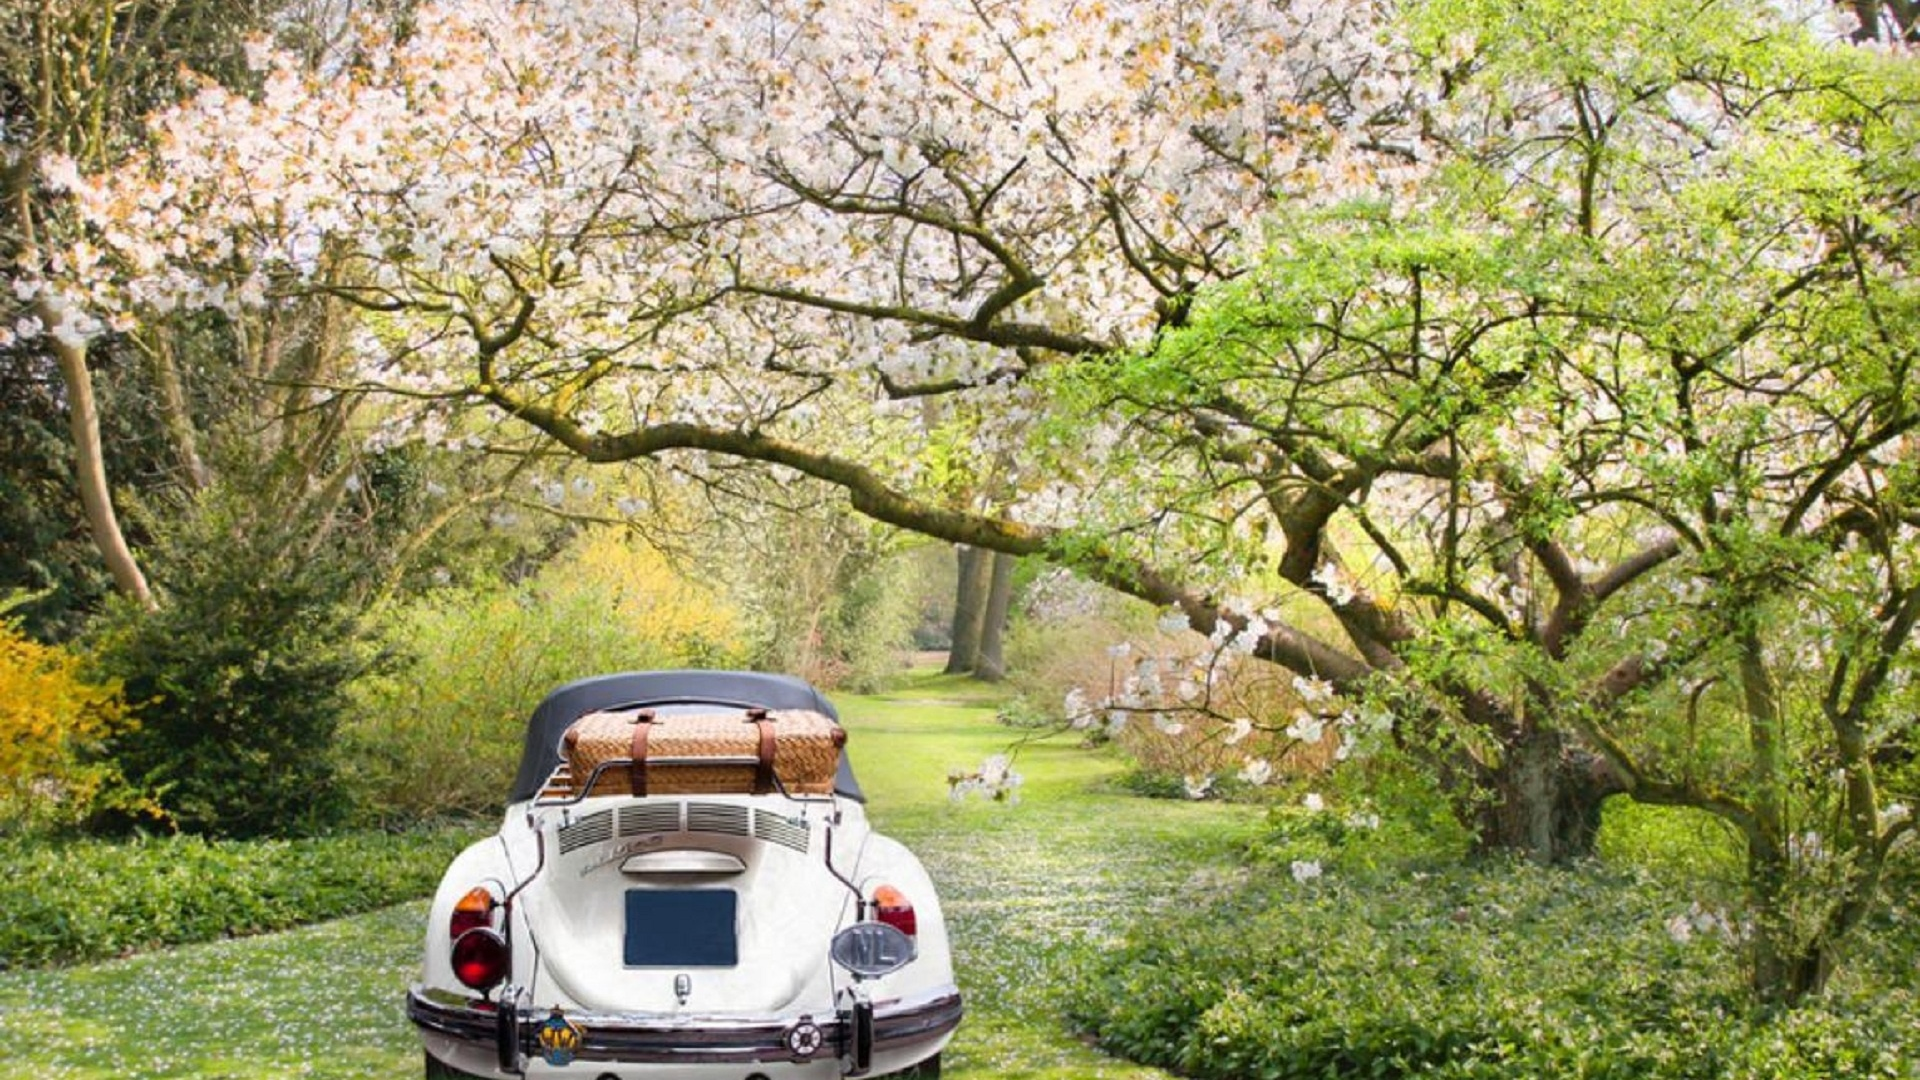 Girls Of The Wilds Wallpaper Walking In The Forest With The Car Spring Season